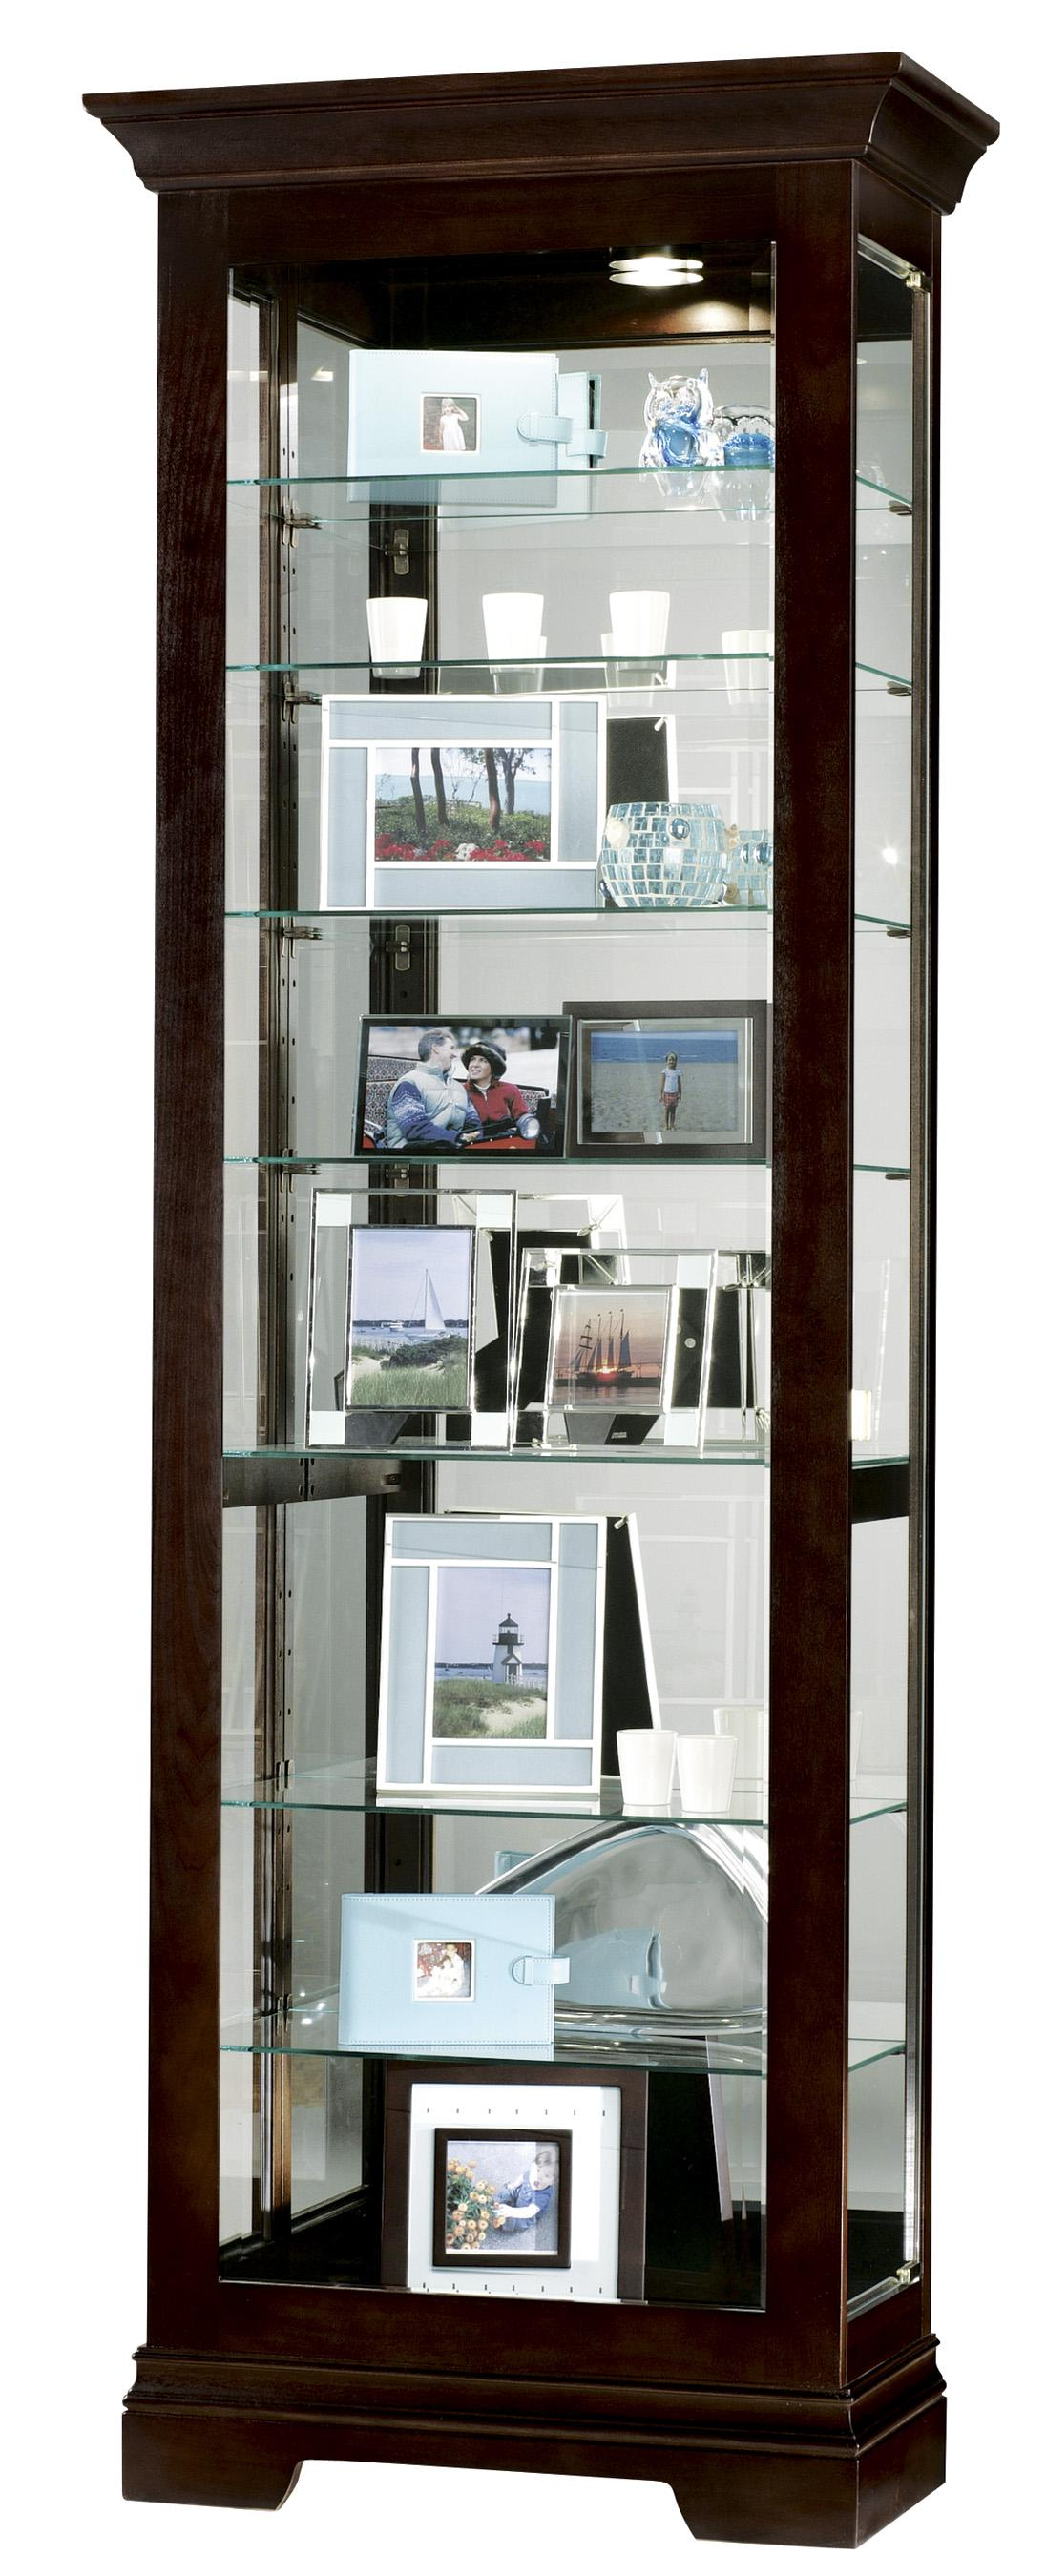 Howard Miller Furniture Trend Designs Curios Saloman Display Cabinet - Item Number: 680-412